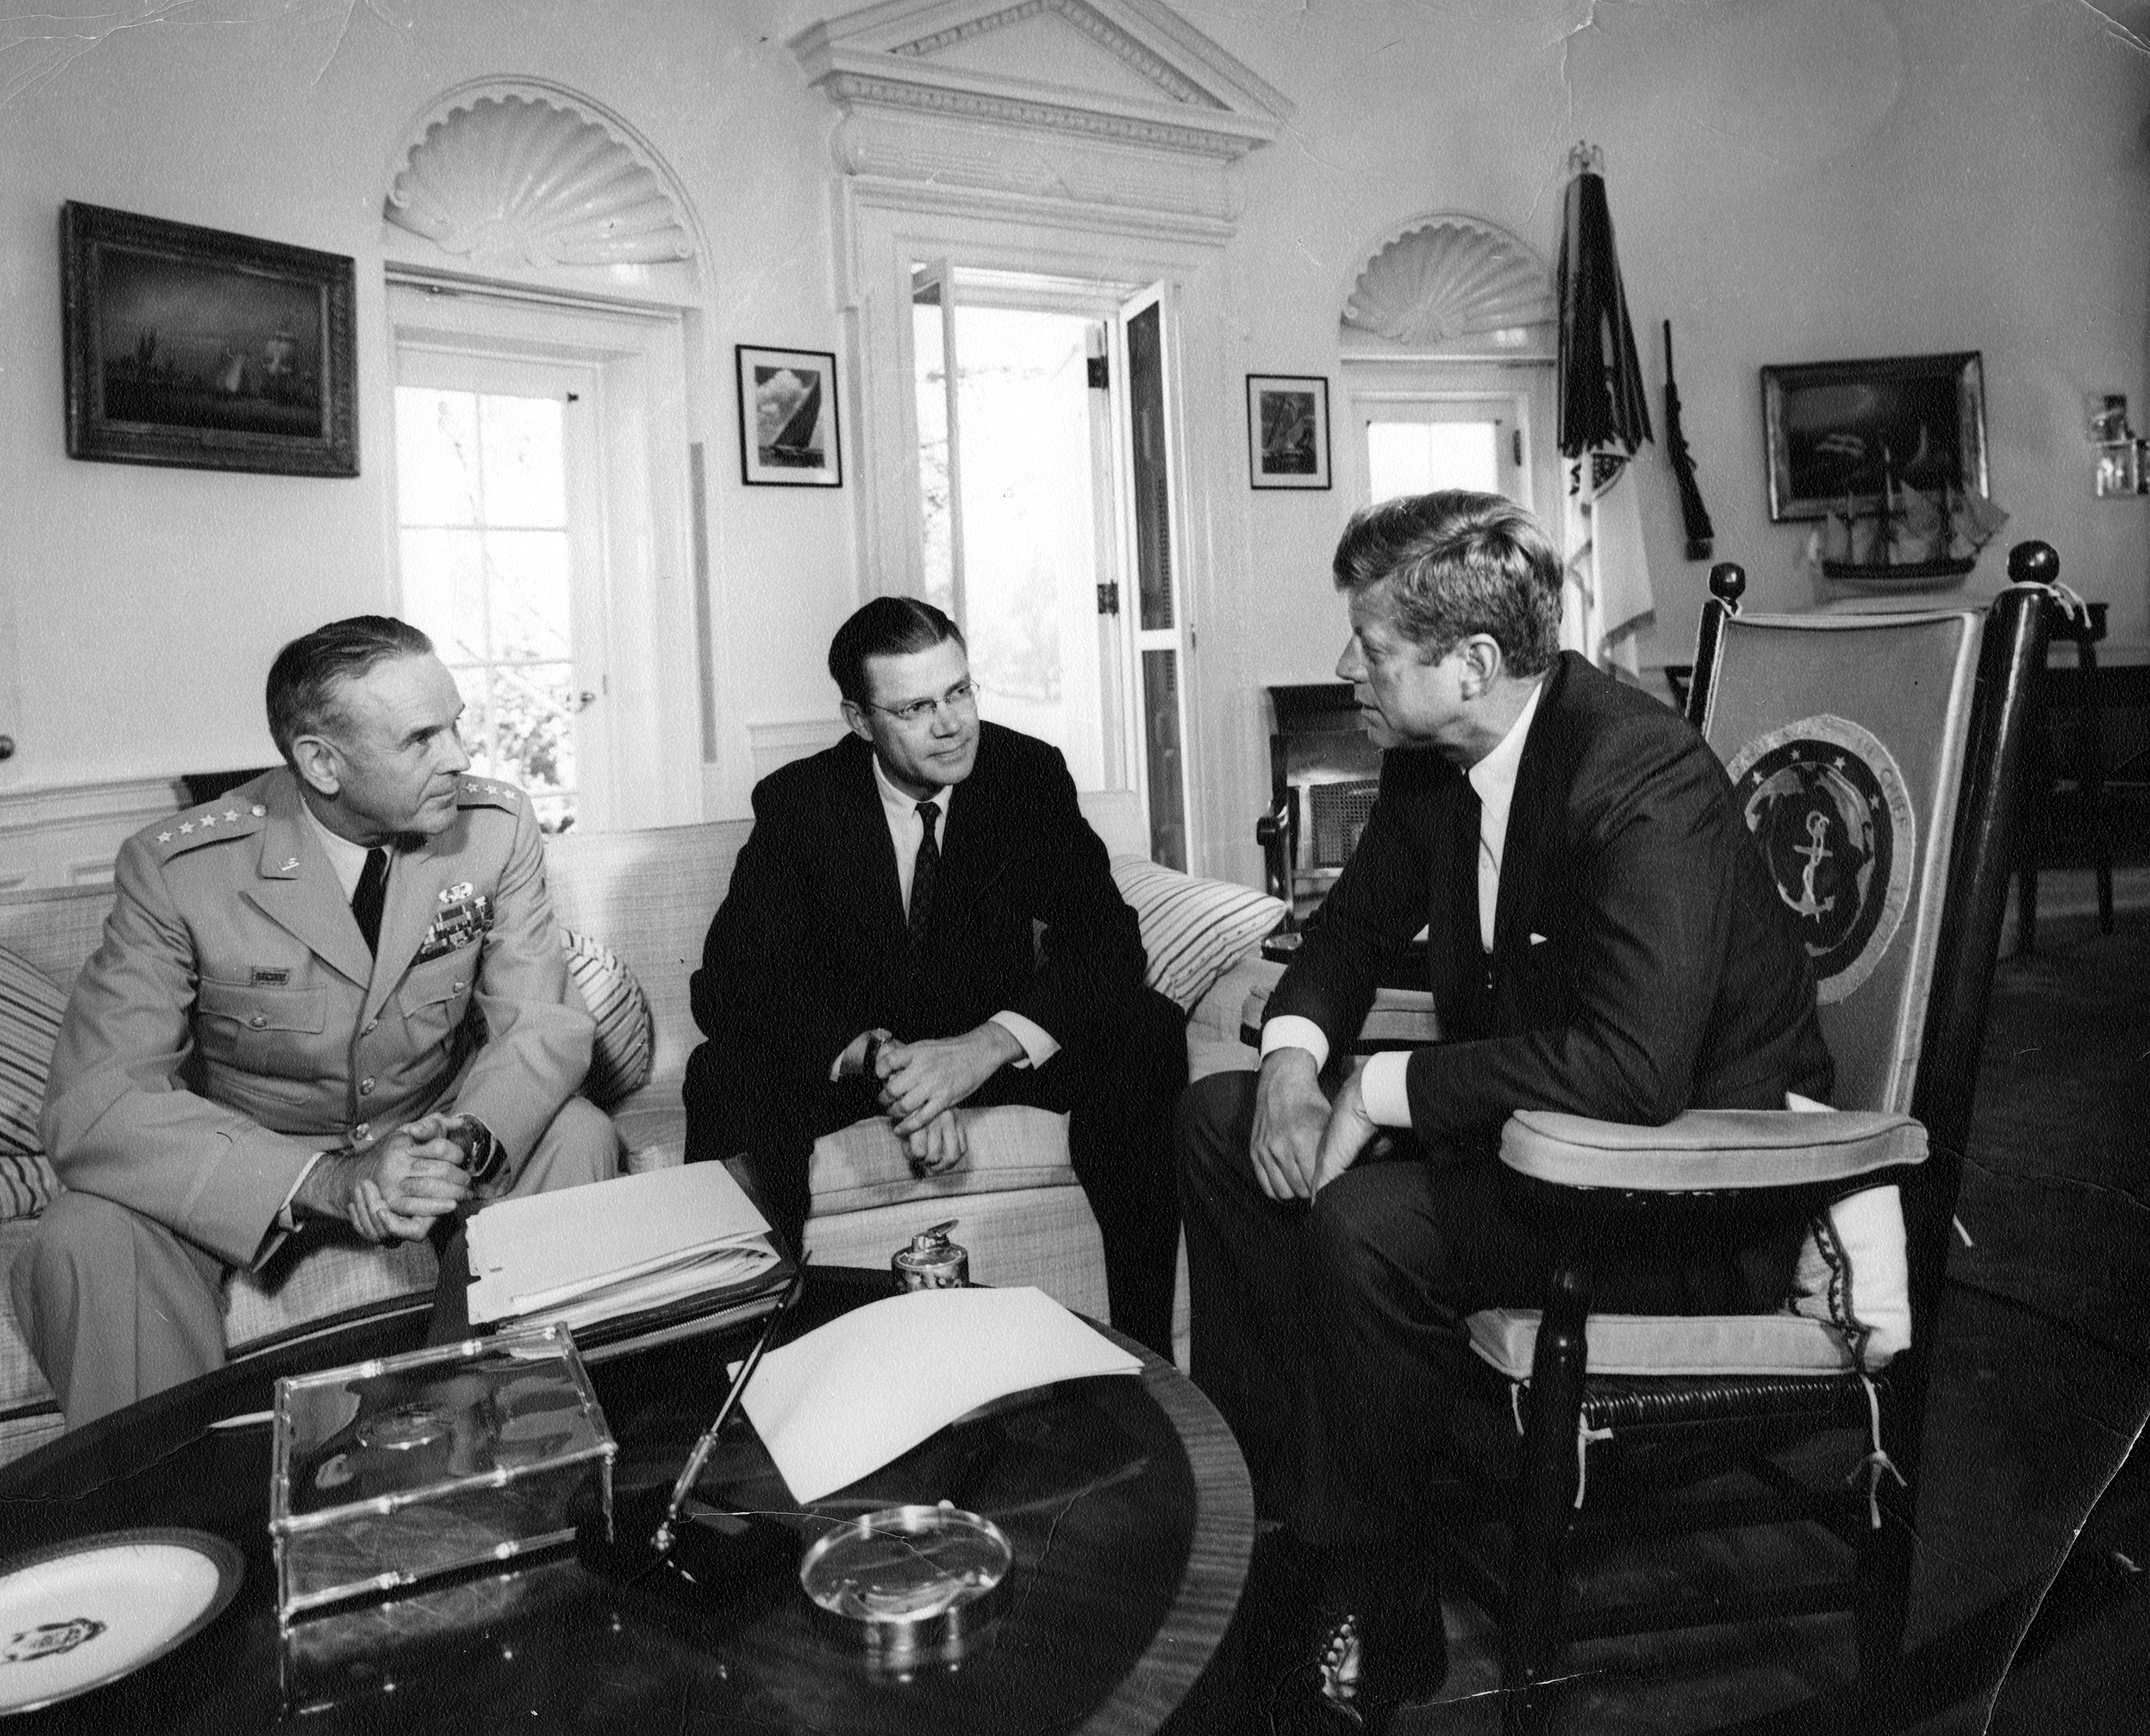 Kennedy, McNamara, and Taylor in the Oval Office at the White House